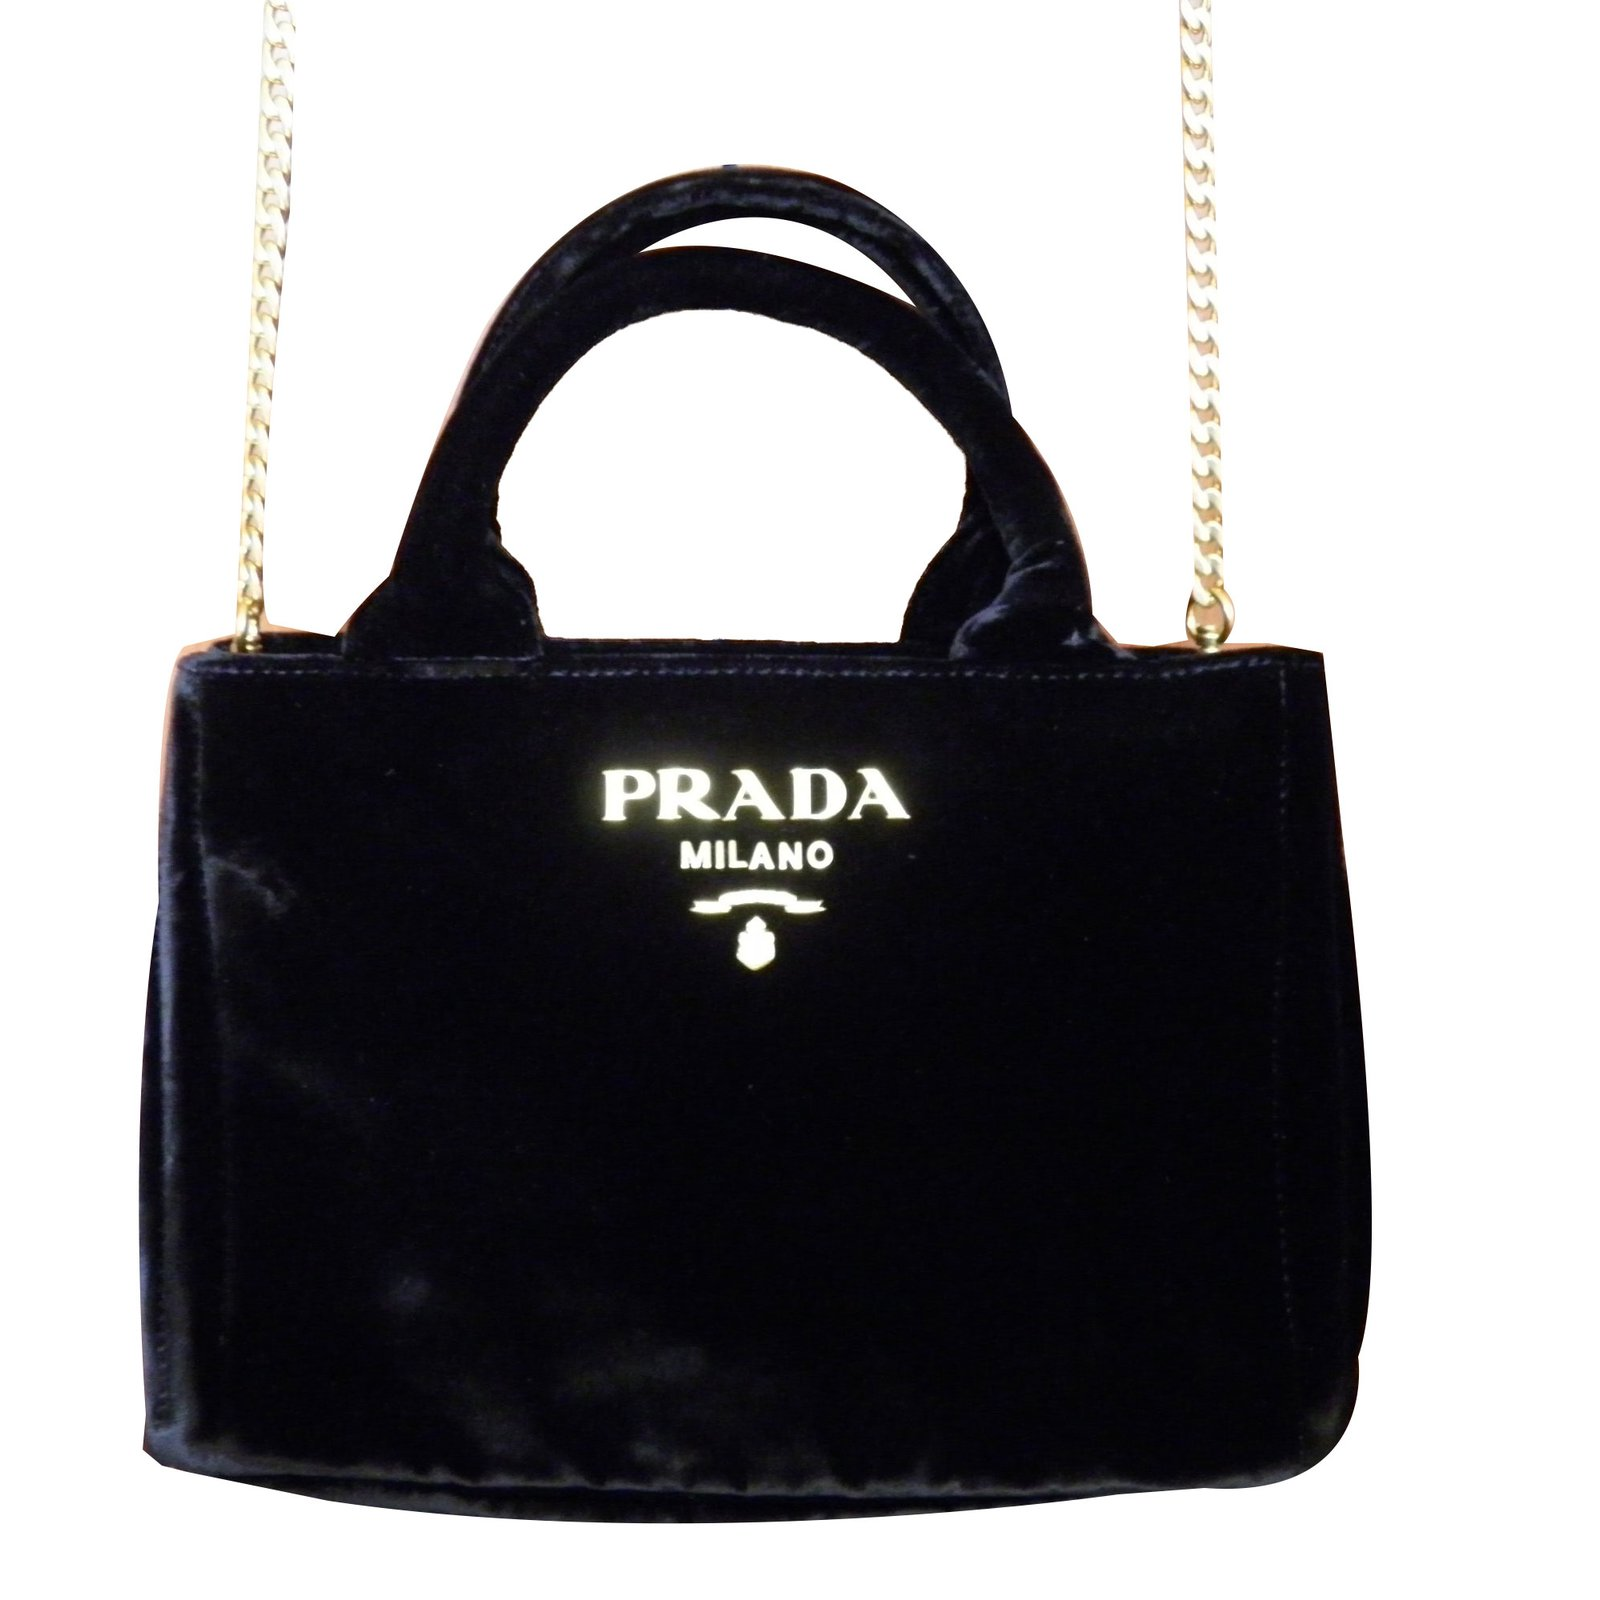 08bc69ce9d91 ... sale prada mini bag handbags velvet black ref.68886 98f74 d8fd3